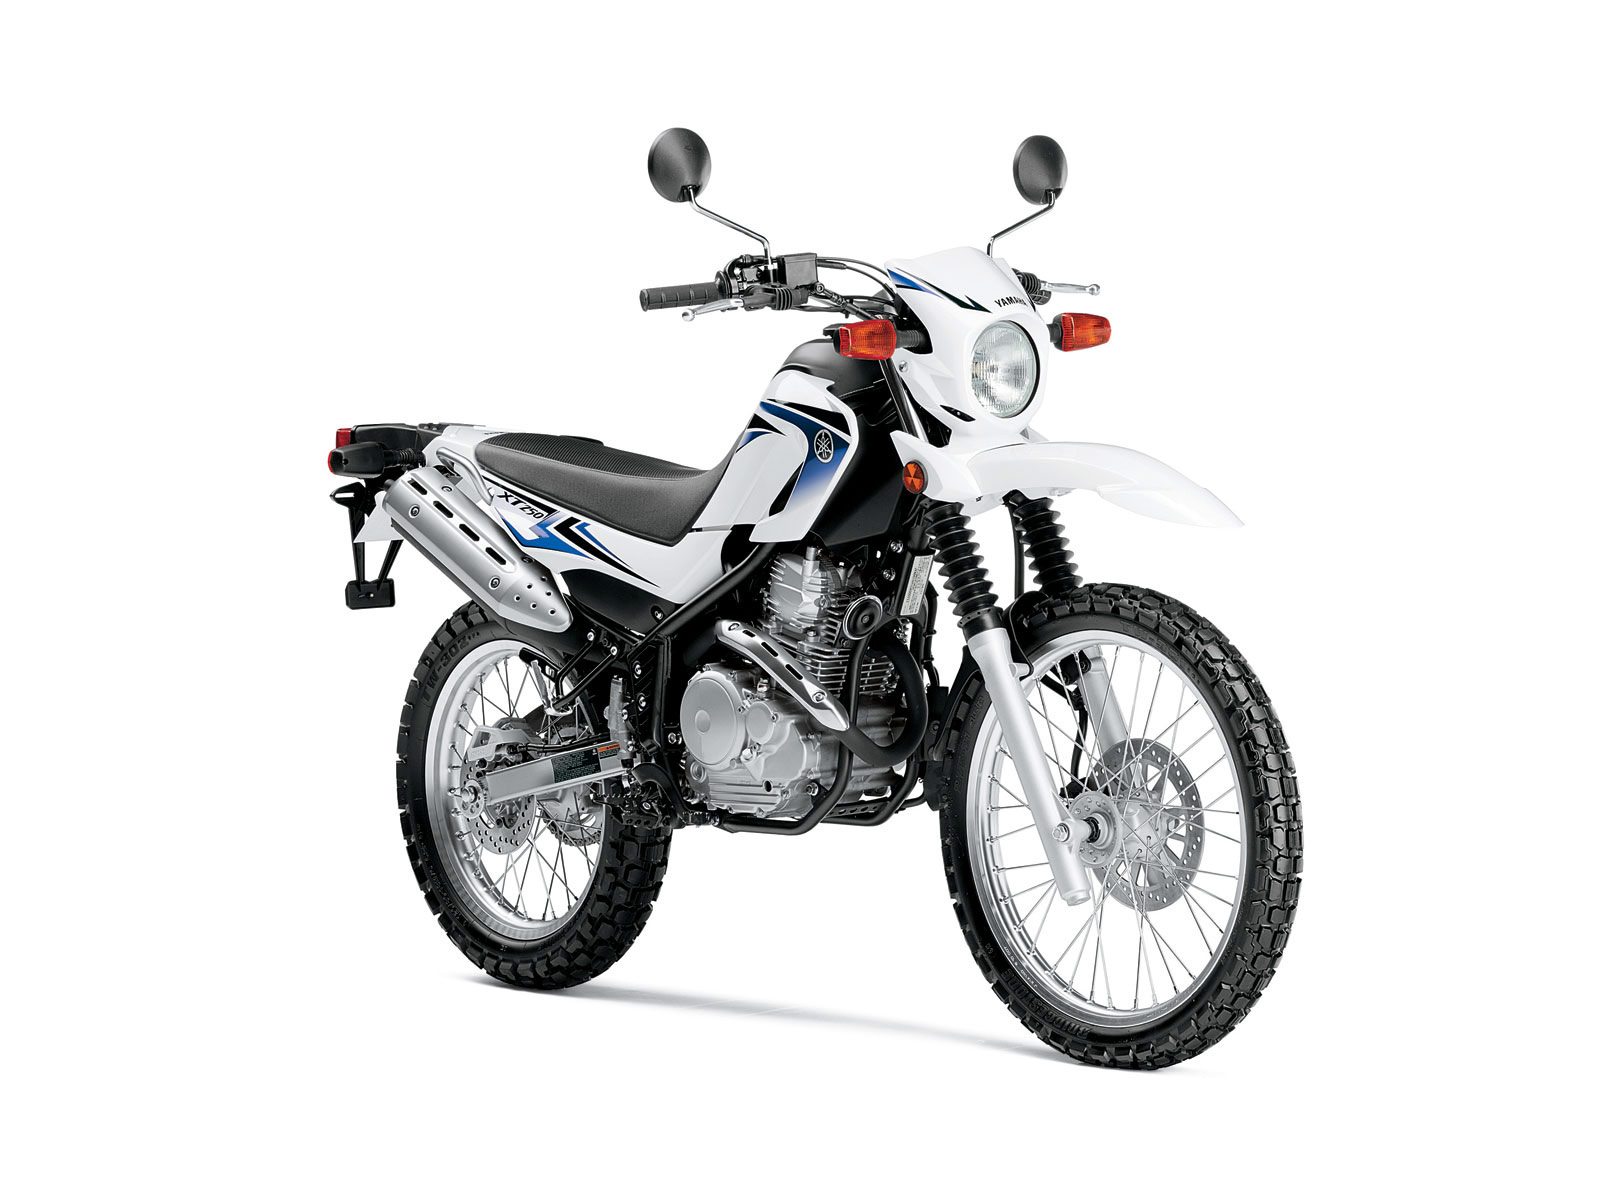 YAMAHA motorcycle wallpaper. 2012 XT250